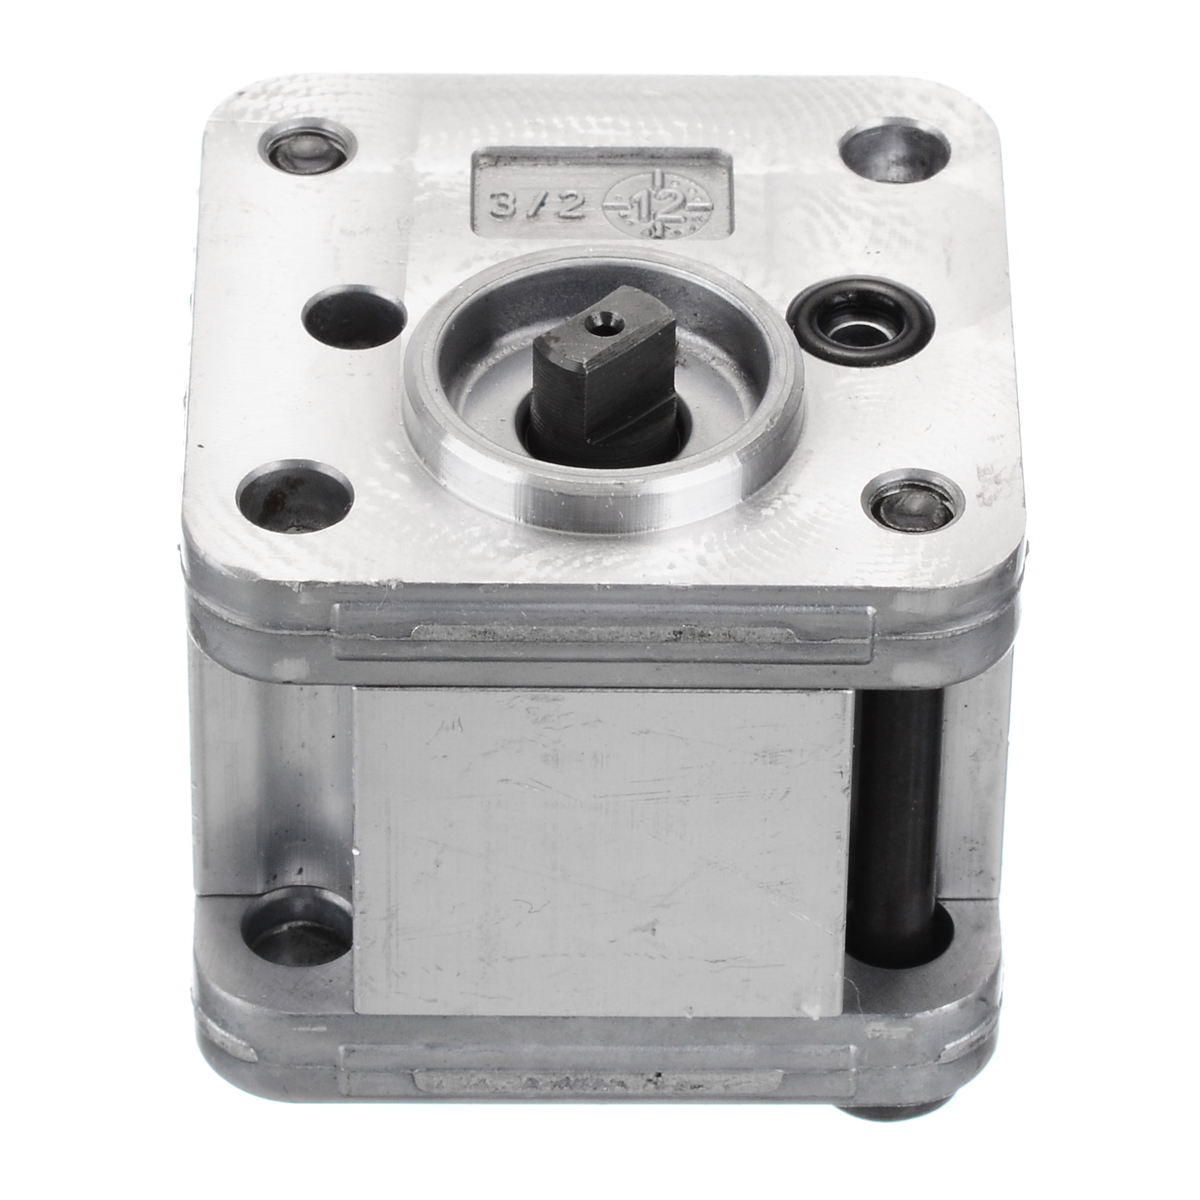 1Pcs Hydraulic Gear Pump Metal Mini Gear Pump Hydraulic Model Excavating Machinery For Home Tools High Quality